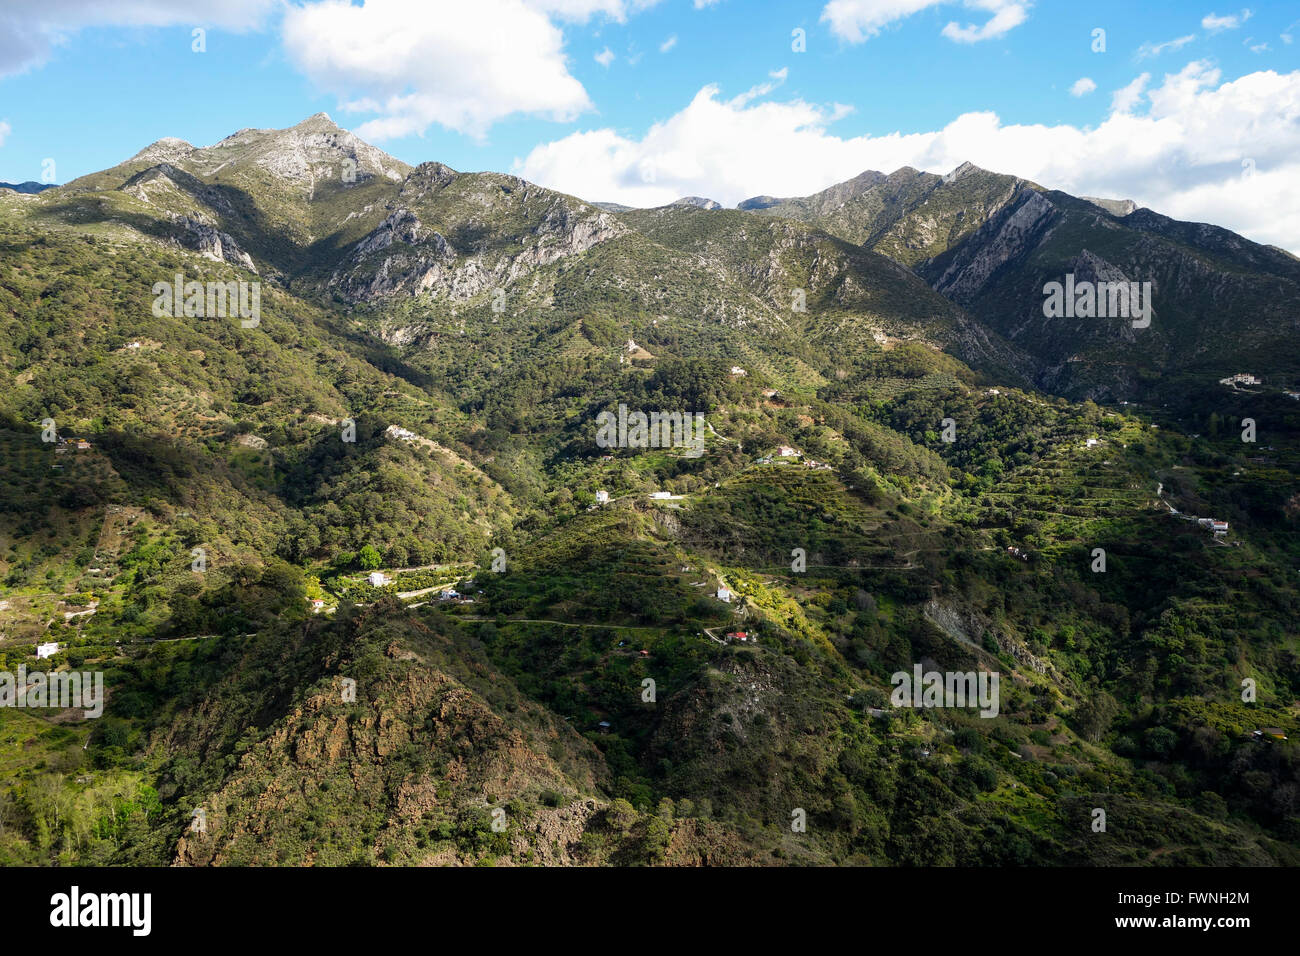 Andalusian countryside with Karstic Limestone mountain range behind, Sierra Blanca, next to the village of Istan, - Stock Image